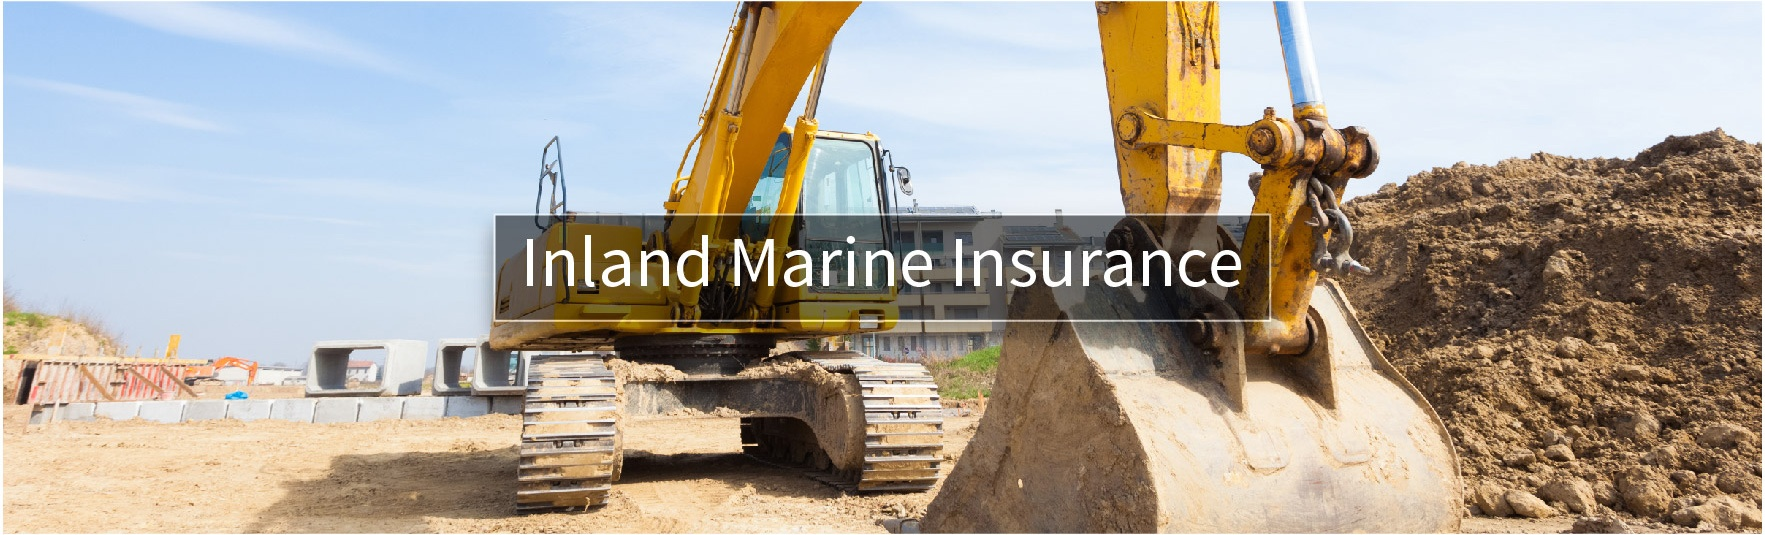 Inland Marine Insurance Massachuetts